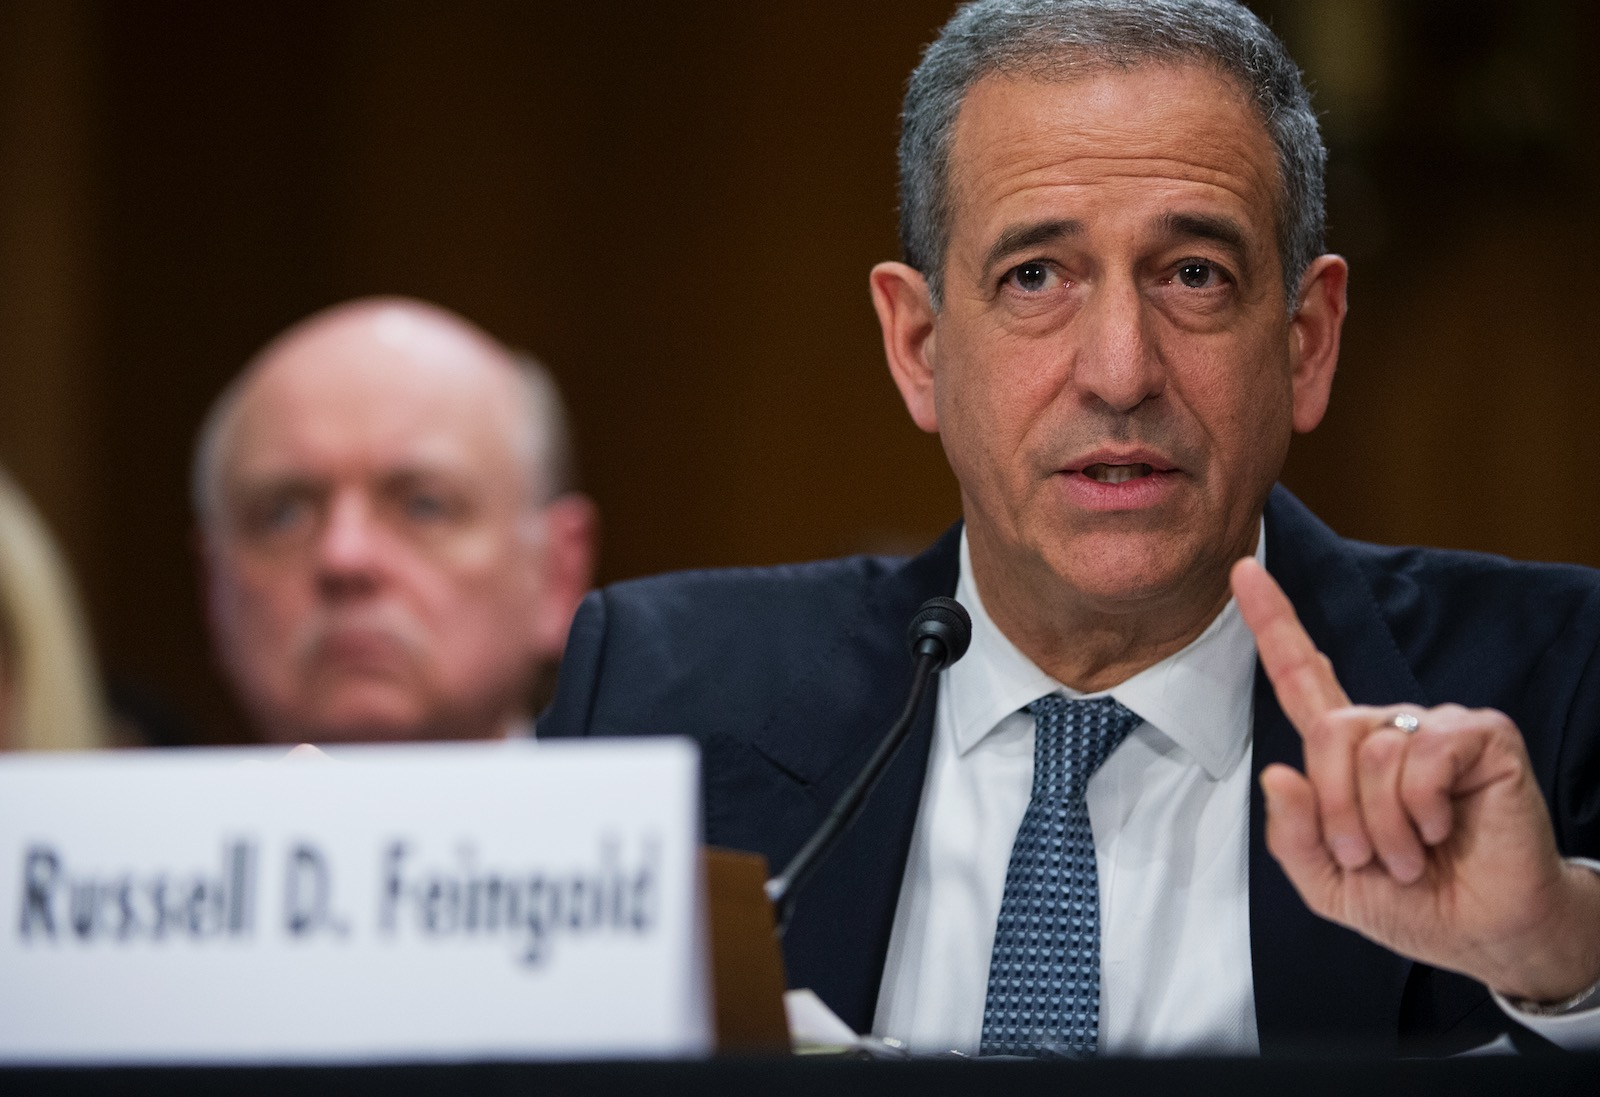 Former Senator Russ Feingold testifying to the Senate Foreign Relations Committee about his work as a special envoy for the Great Lakes Region of Africa, Capitol Hill, Washington, D.C., February 26, 2014